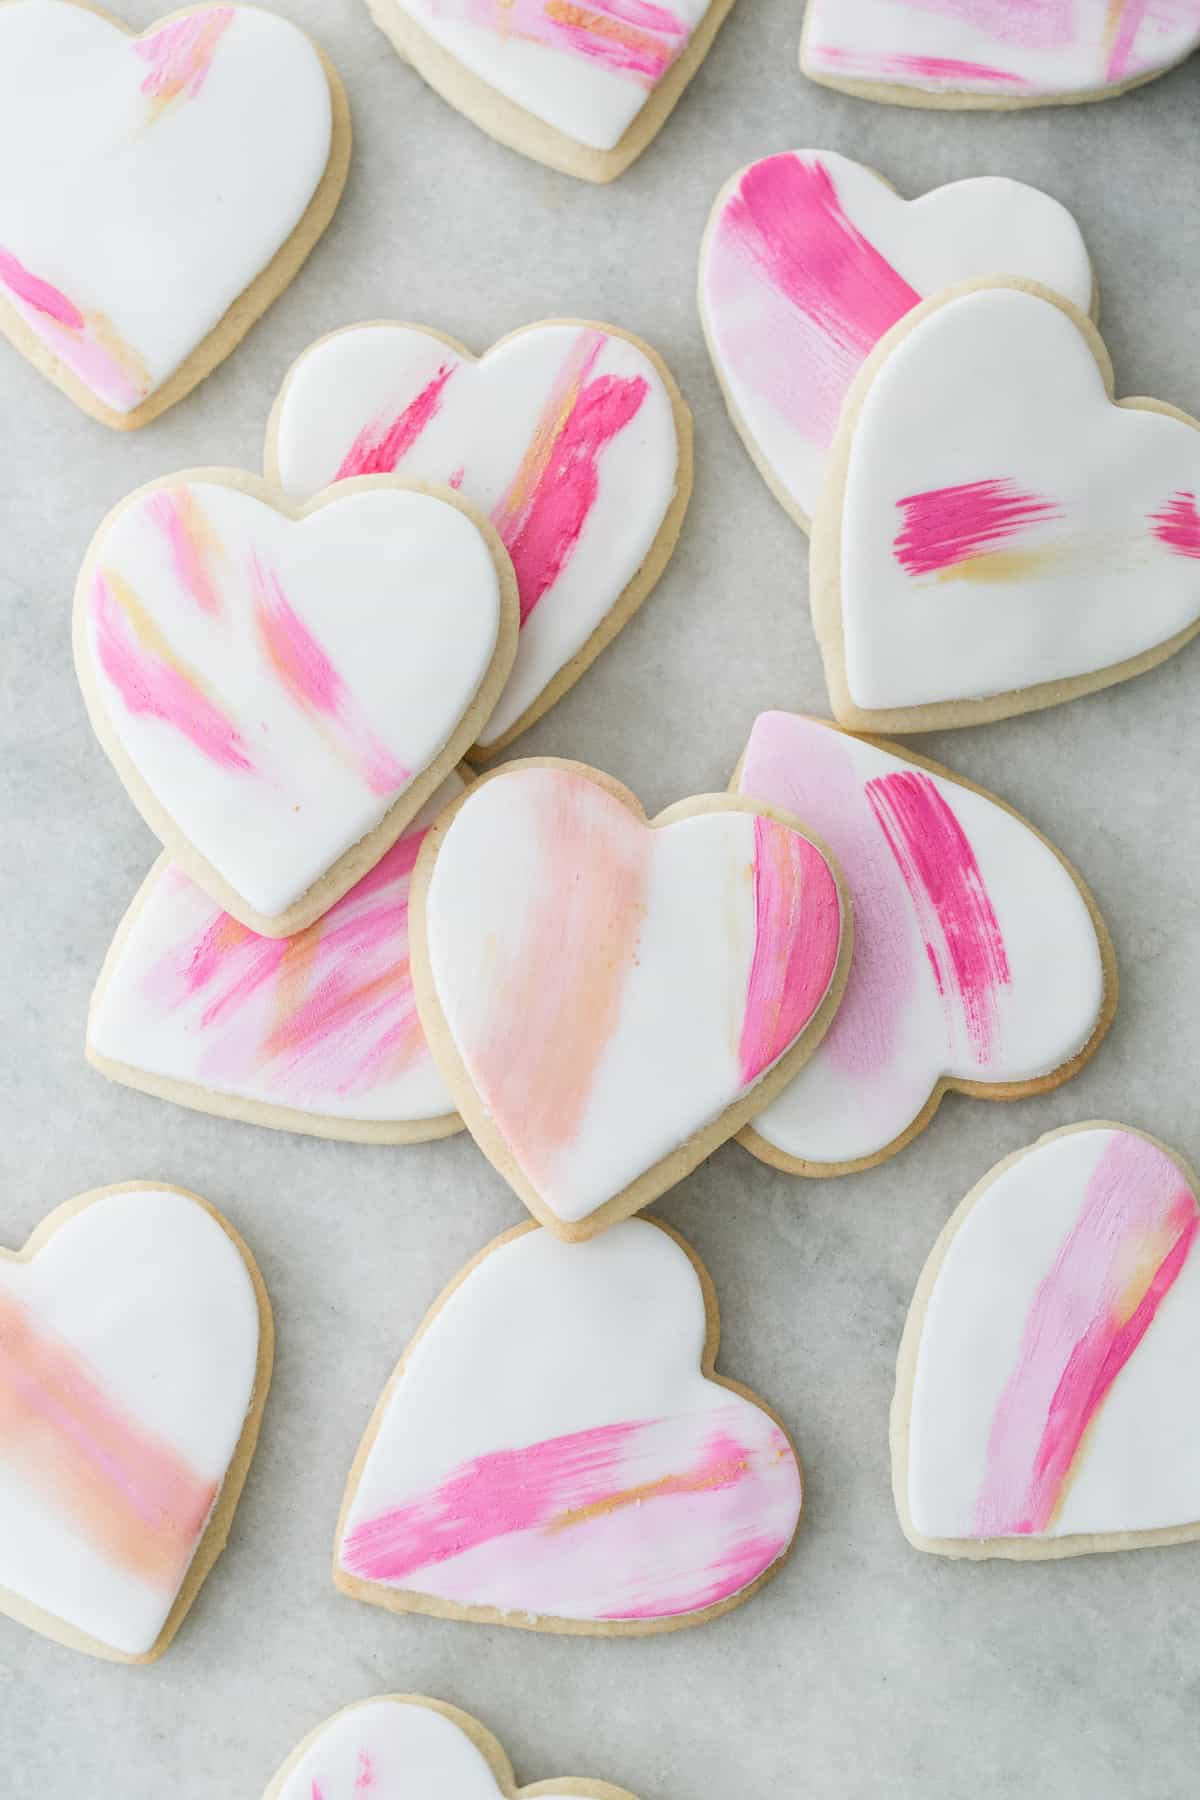 heart shaped frosted sugar cookies on a table